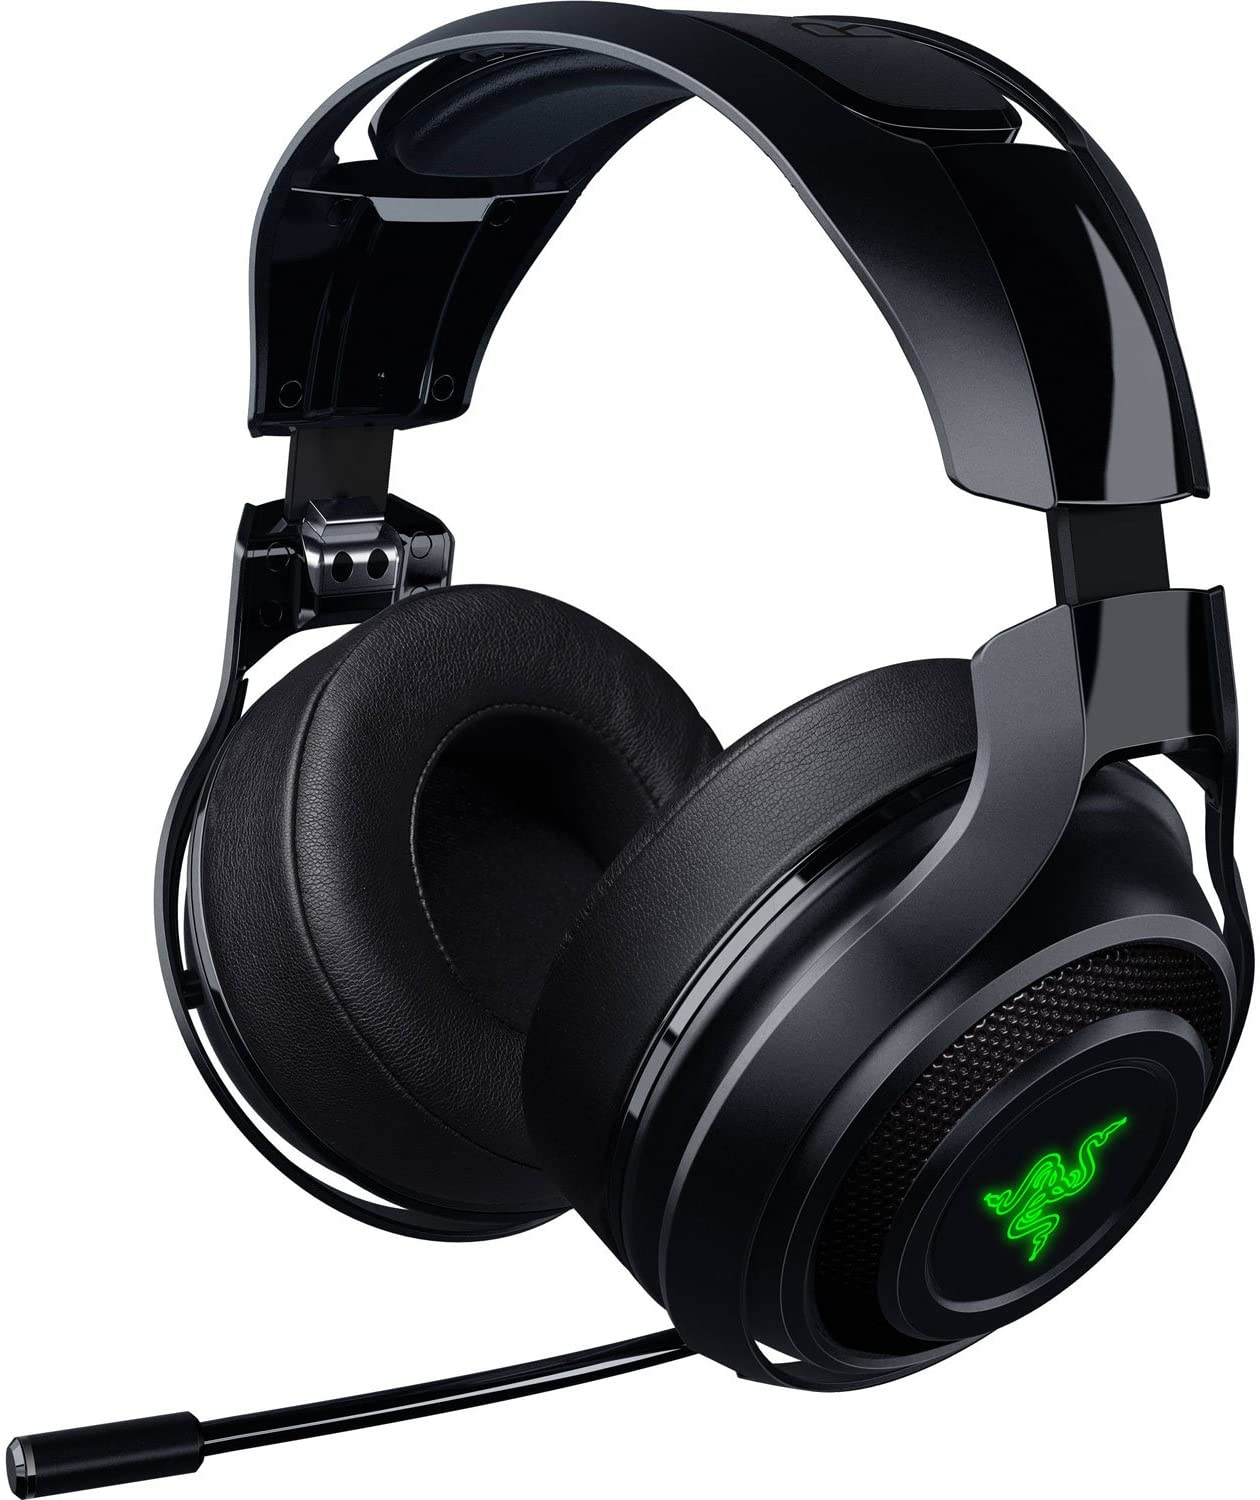 Best gaming headset 2021